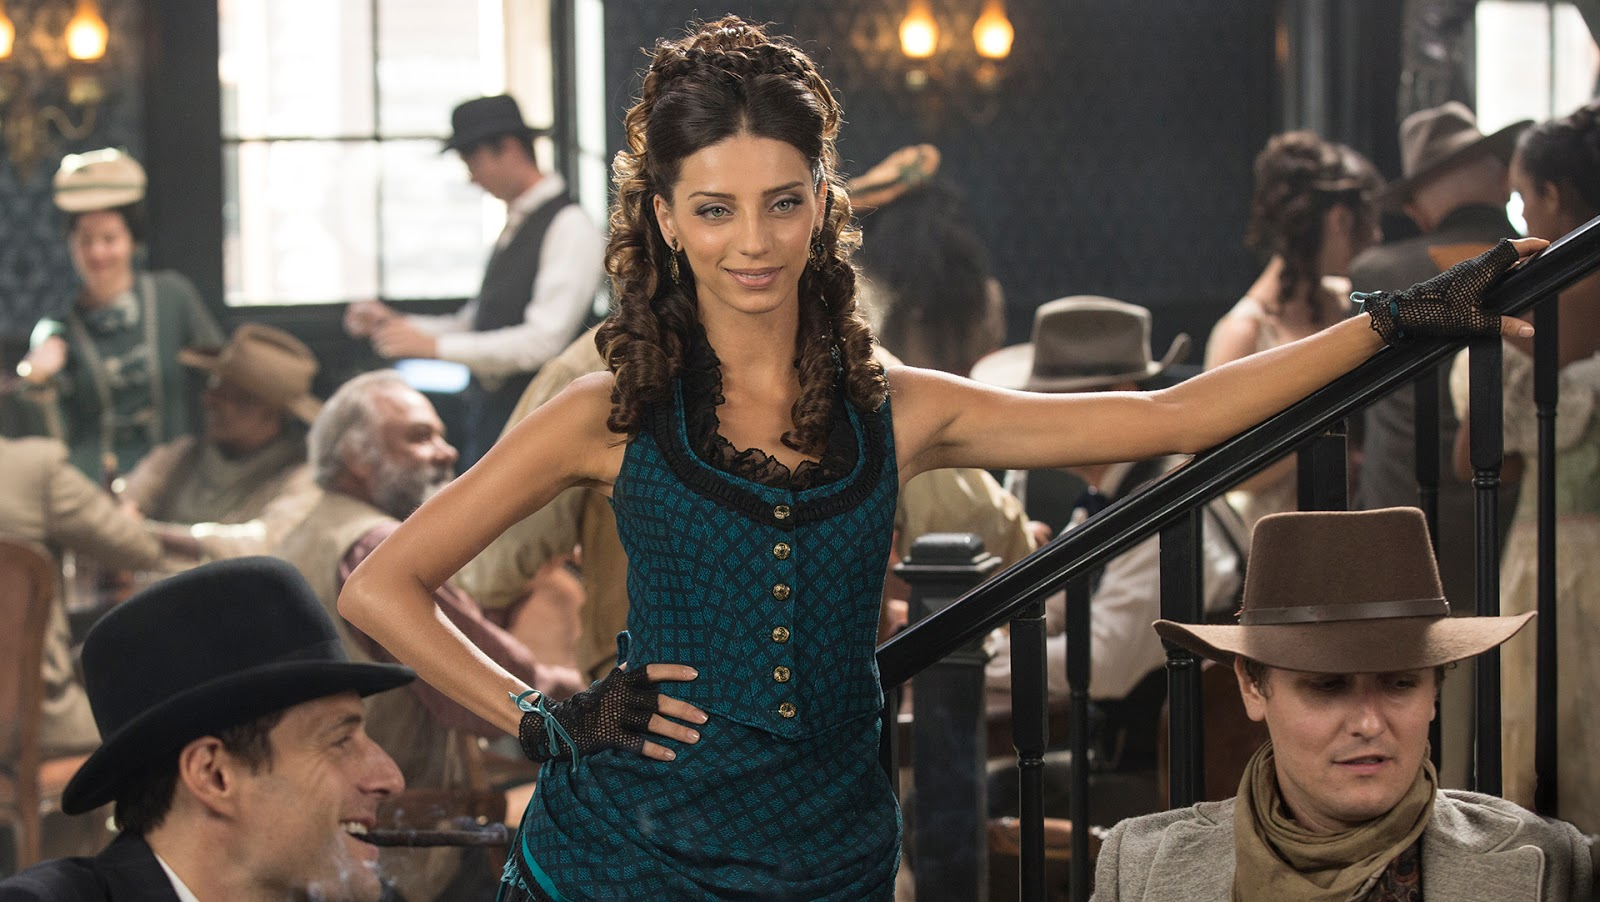 Westworld on HBO takes on a Wild West aesthetic